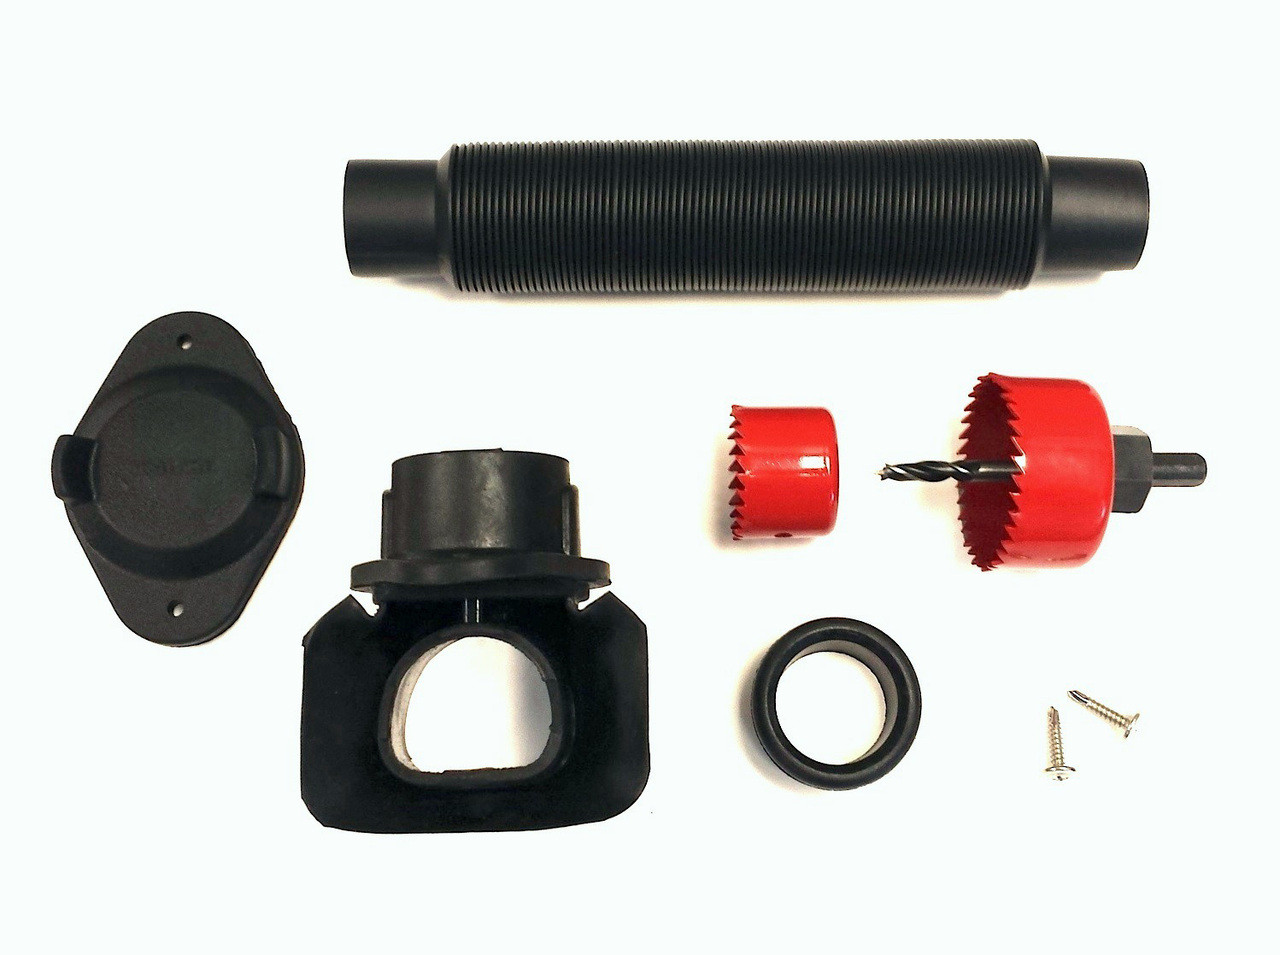 rain barrel diverter, downspout diverter, rain barrel parts